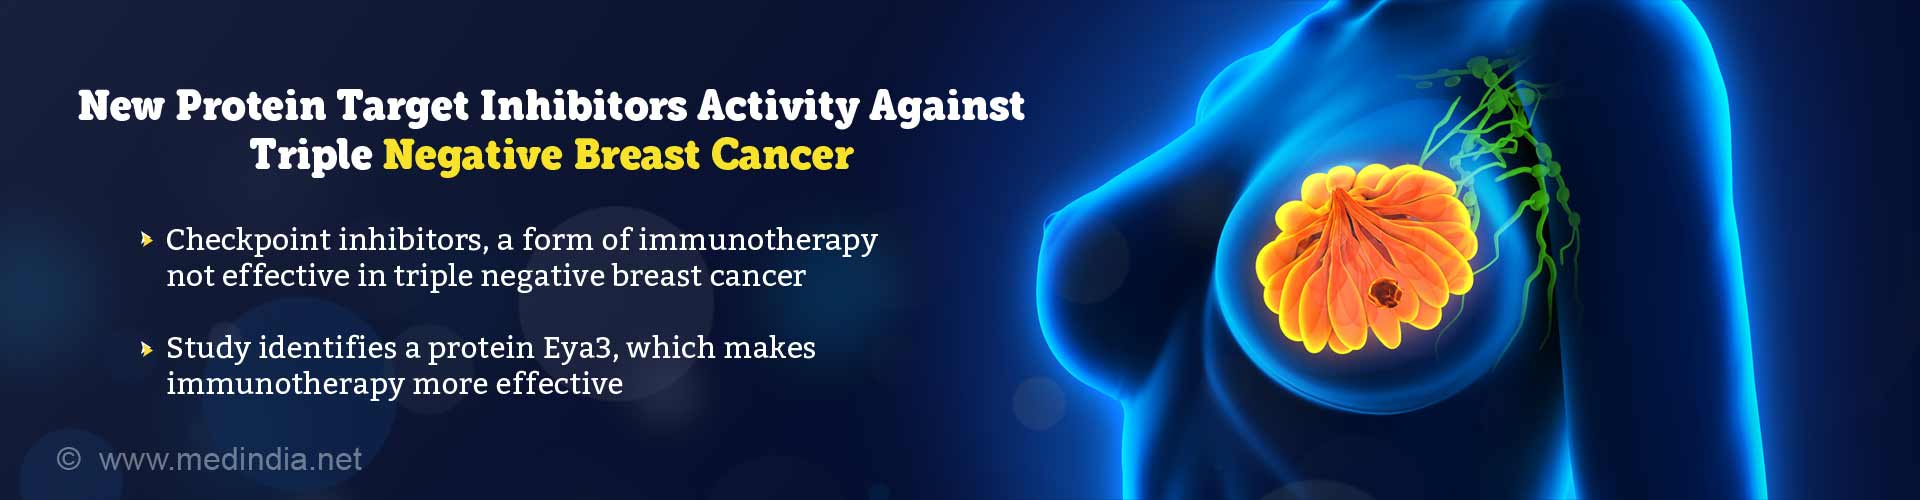 new protein target inhibitors activity against triple negative breast cancer